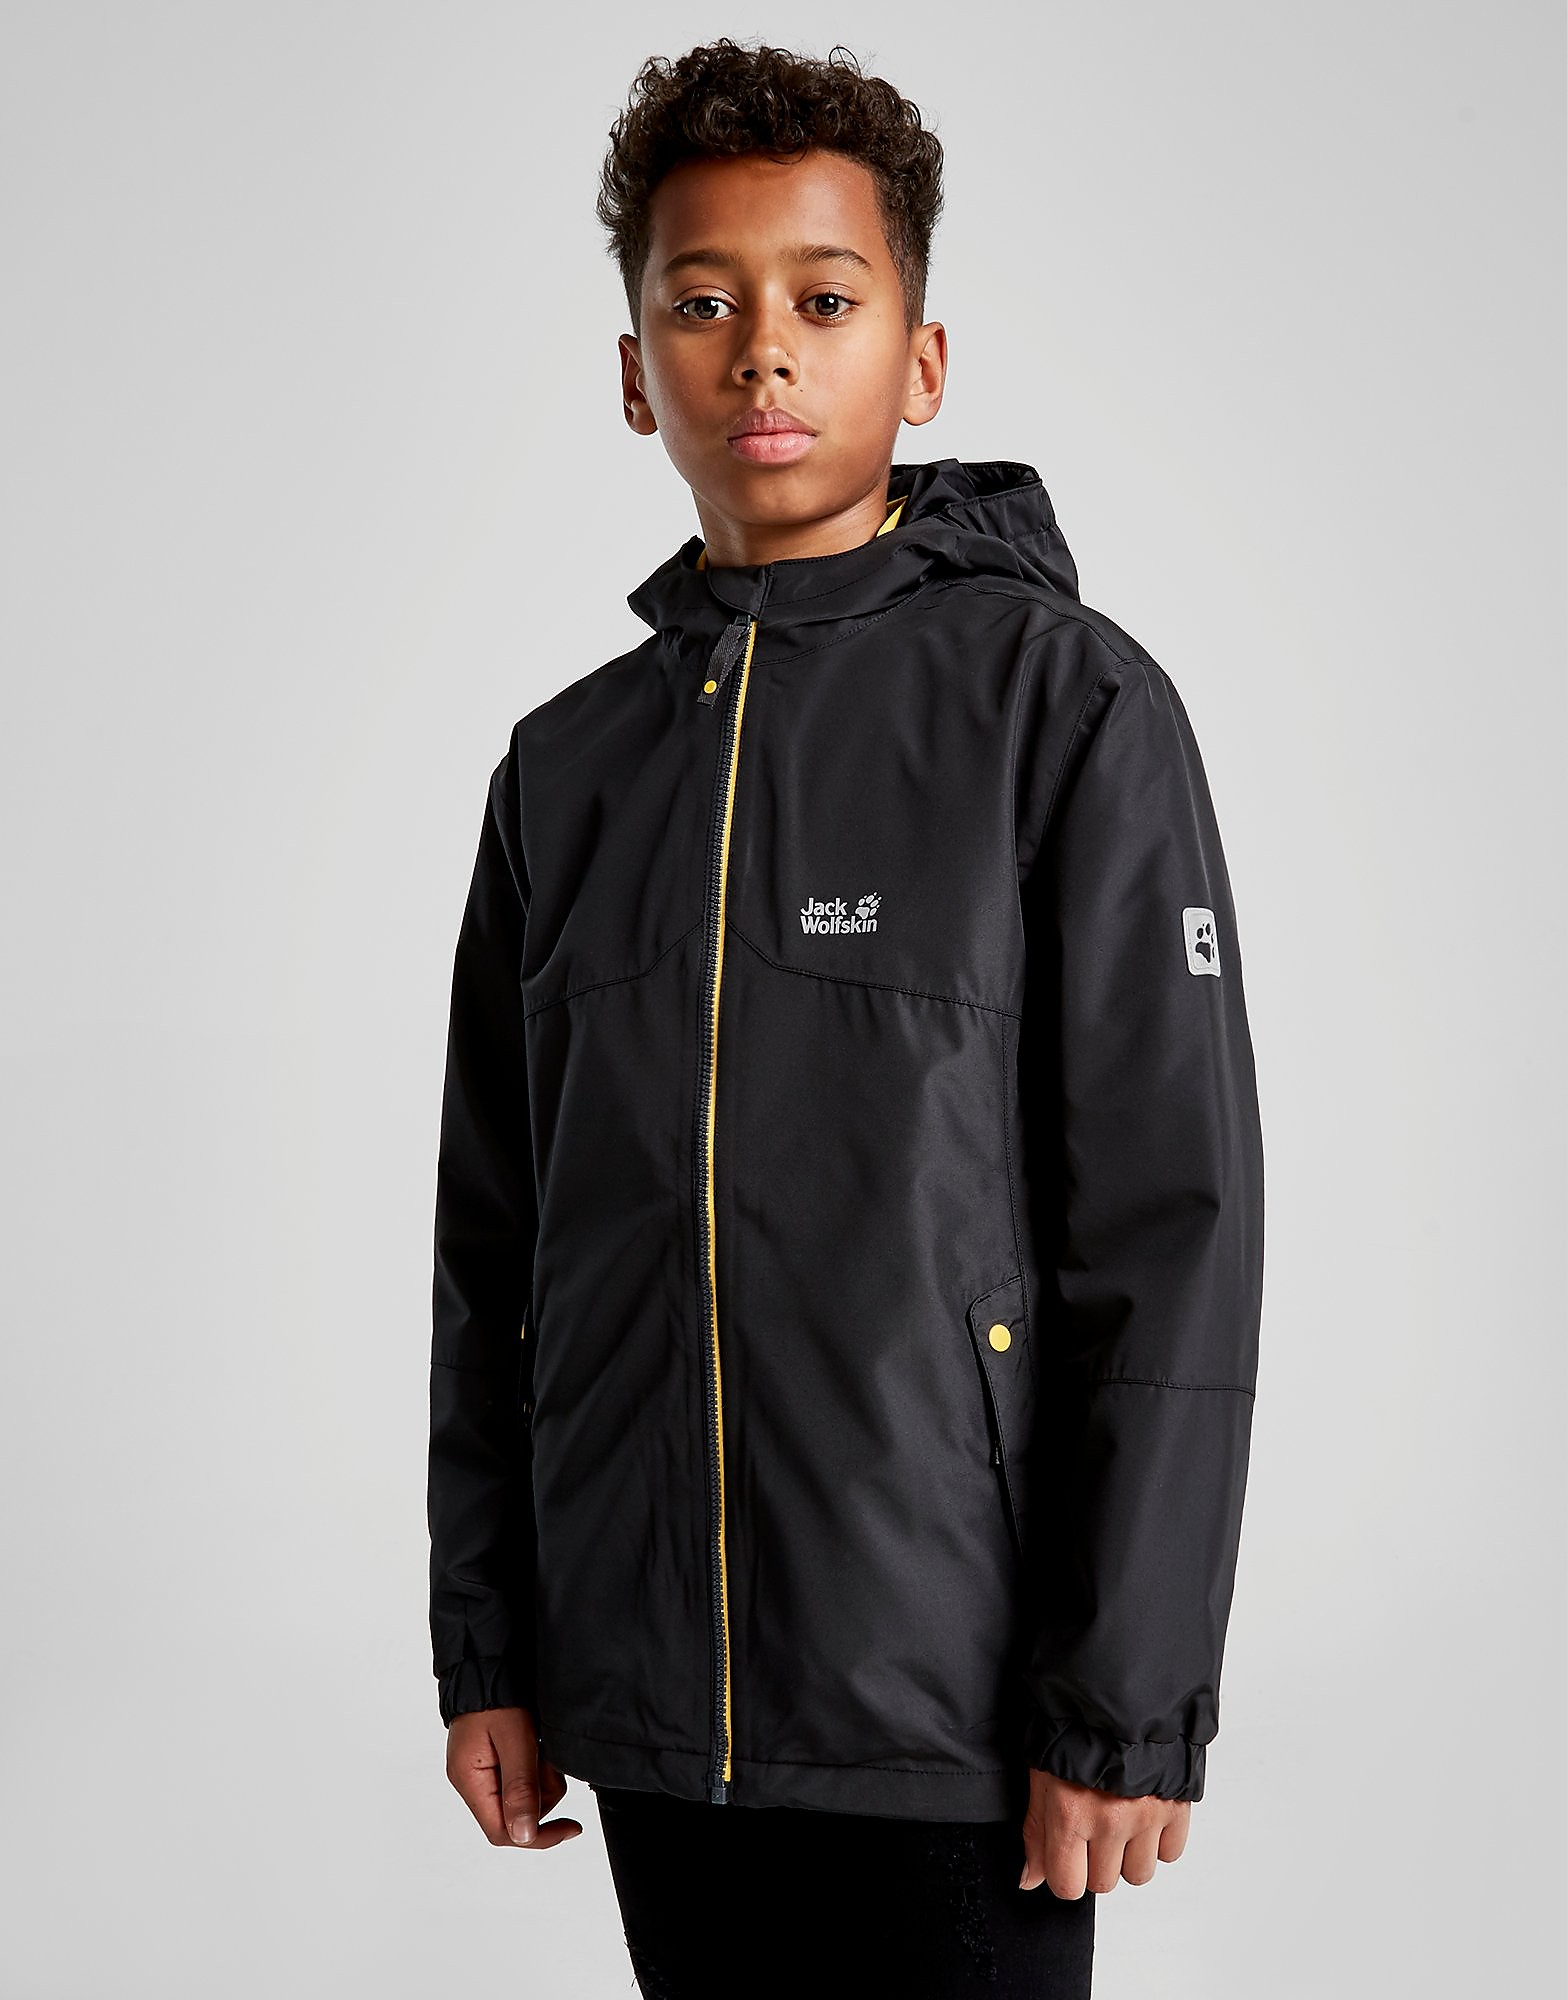 Jack Wolfskin Iceland 3-in-1 Jacket Junior - Zwart - Kind